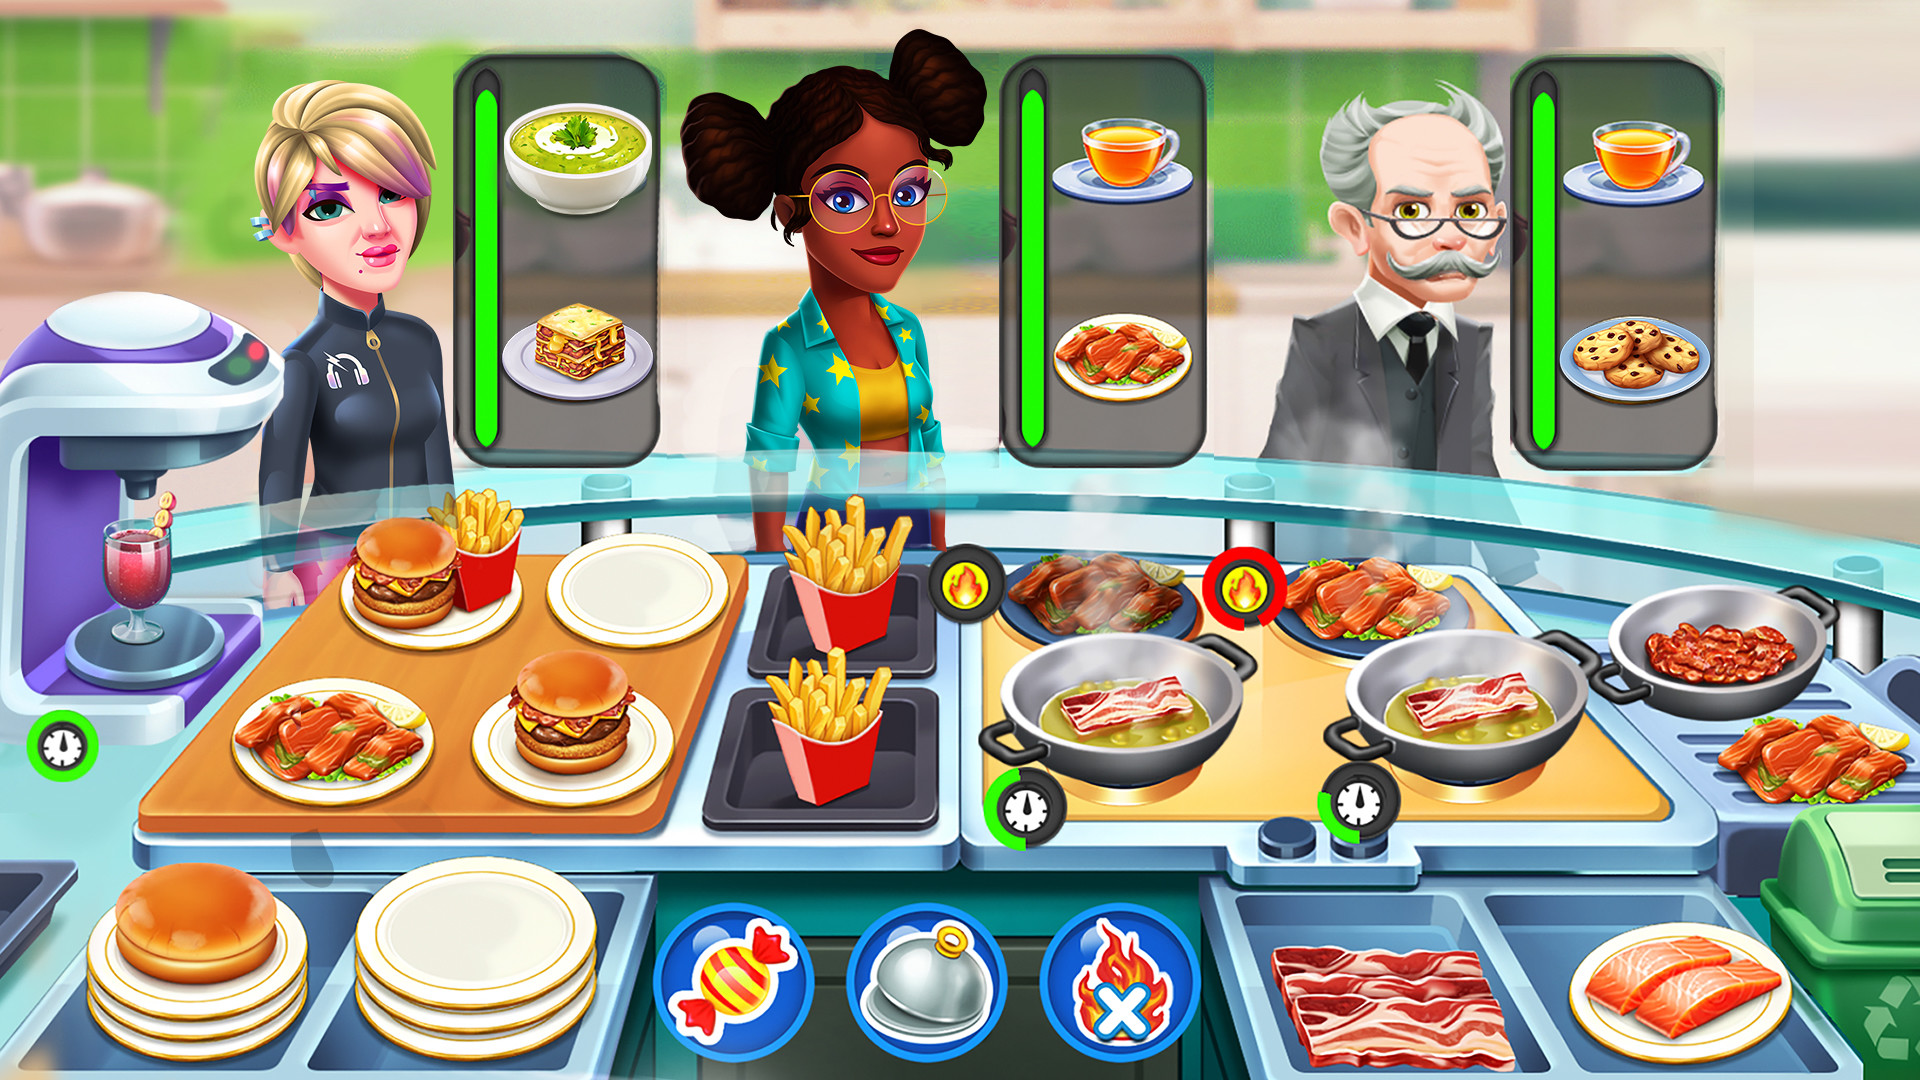 Claim Star Chef 2: Cooking Game for free